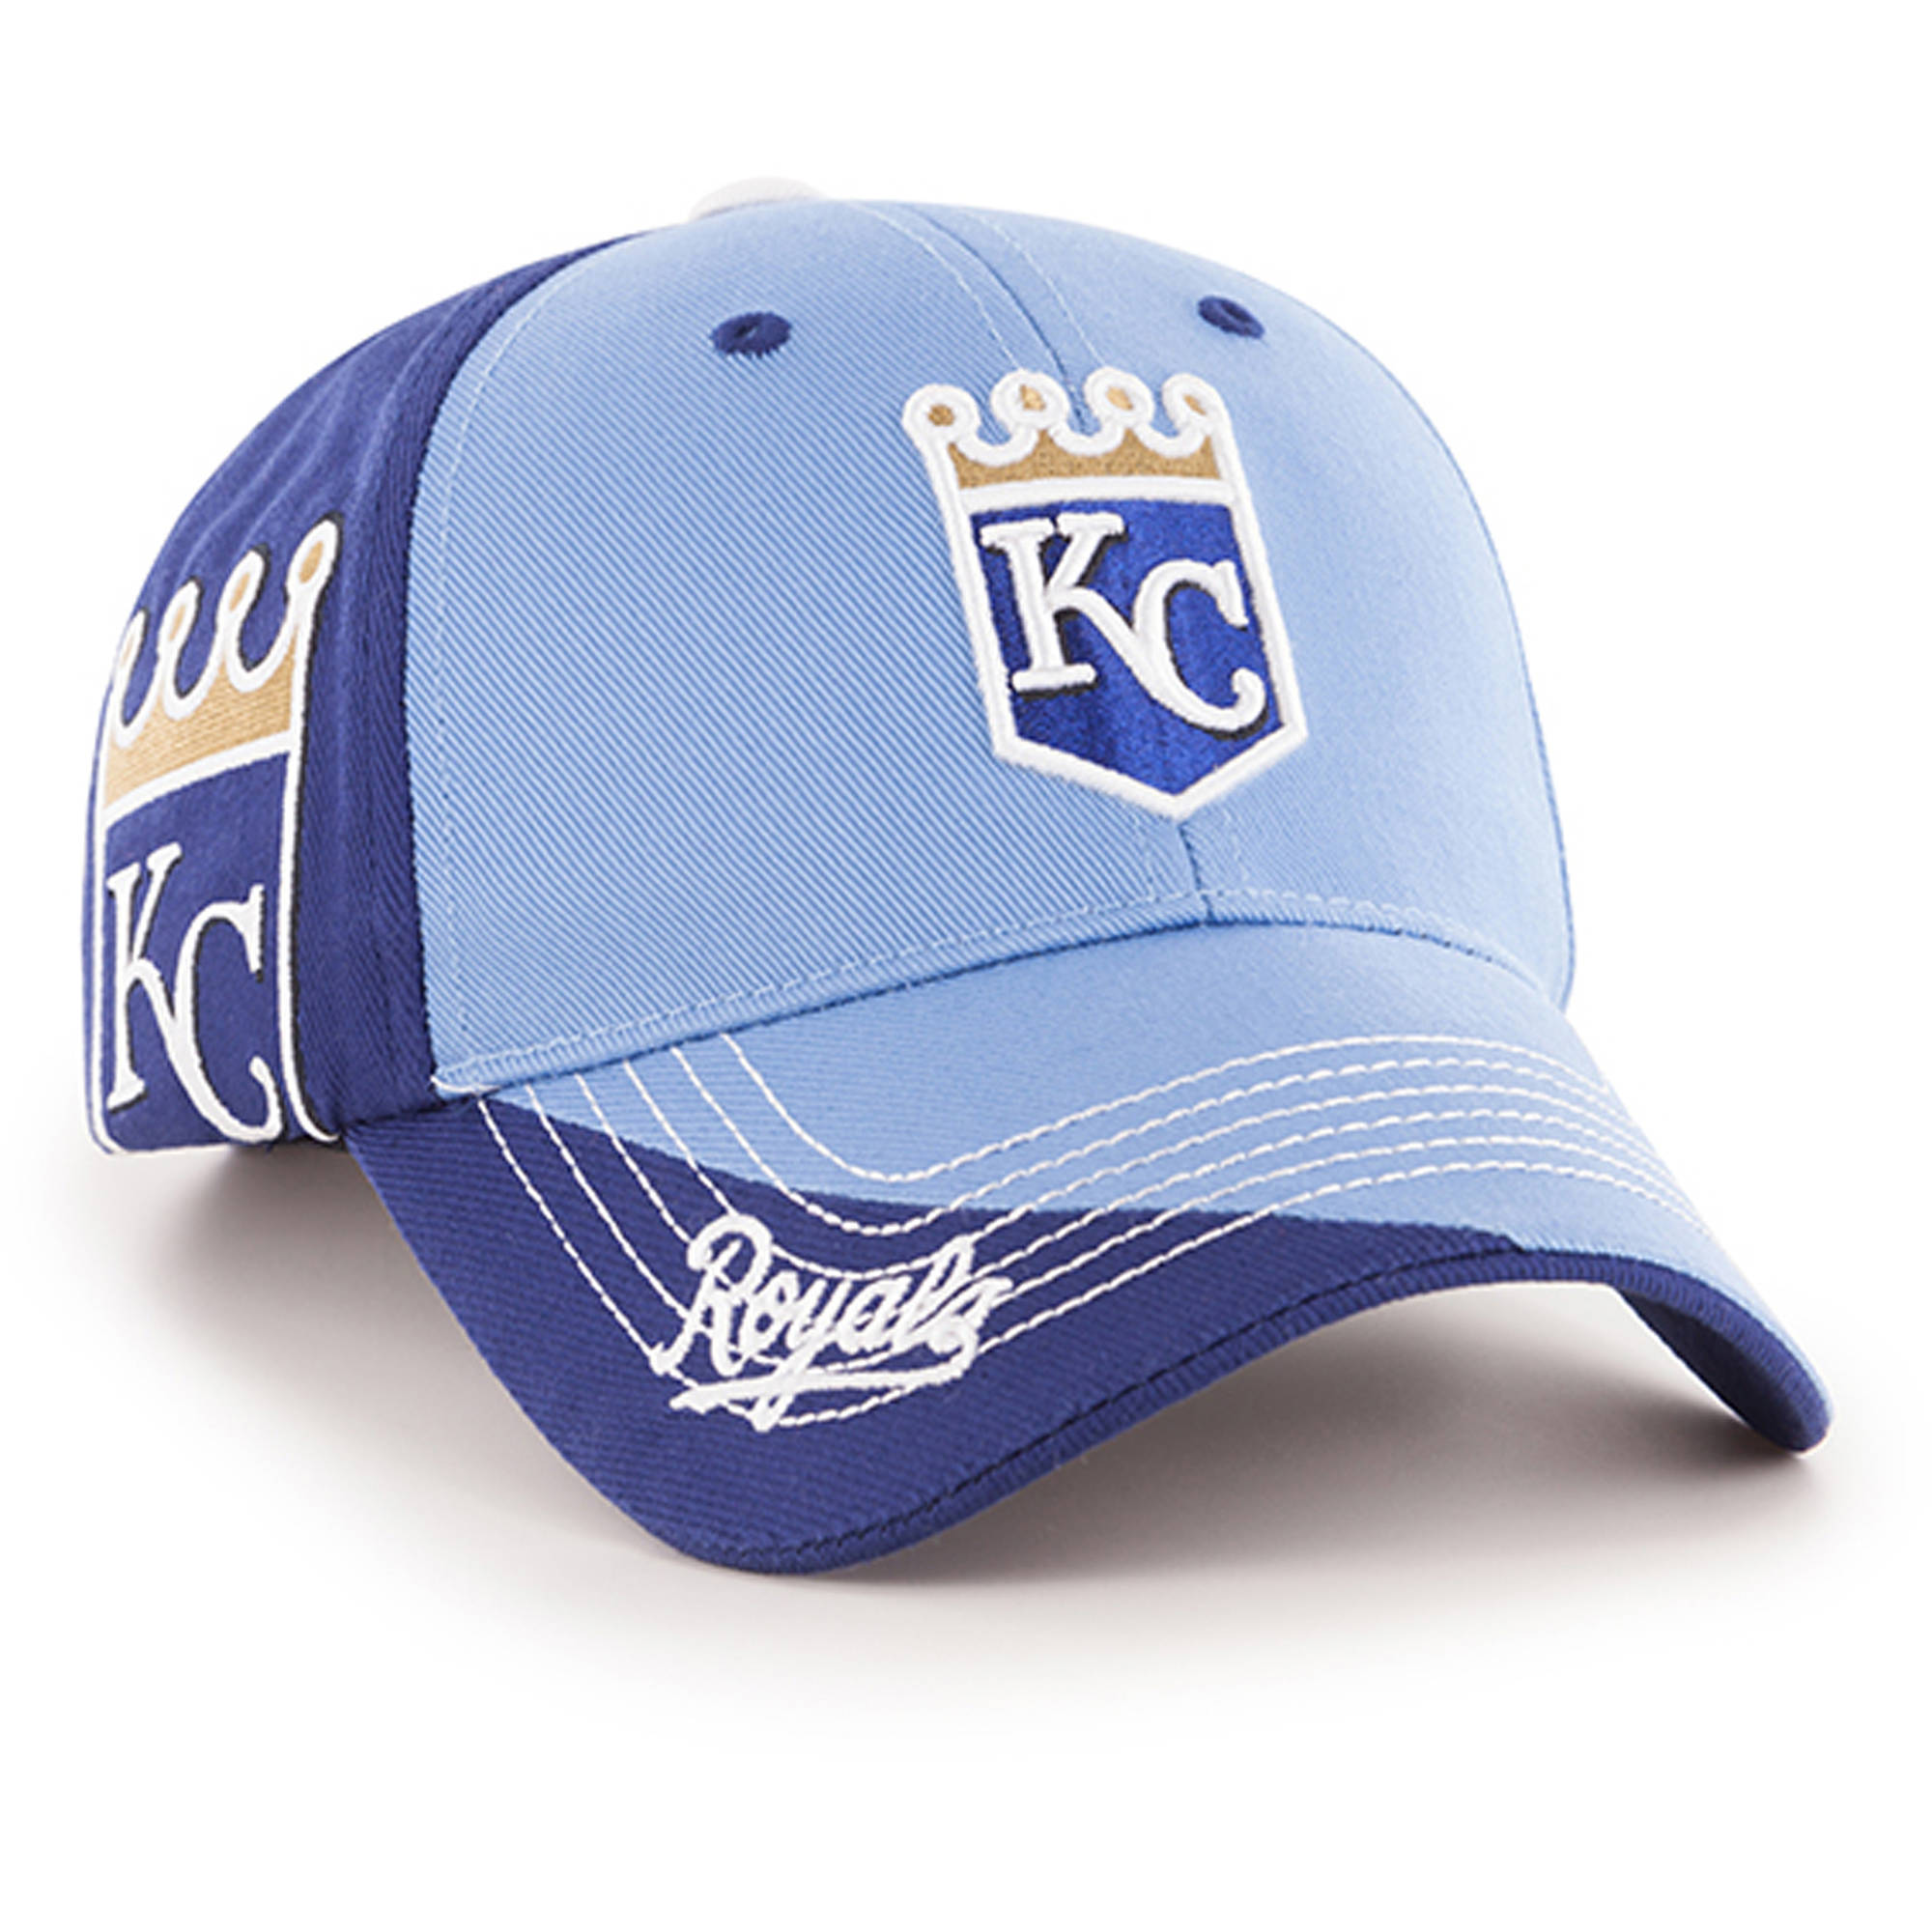 MLB Kansas City Royals Hubris Cap / Hat by Fan Favorite